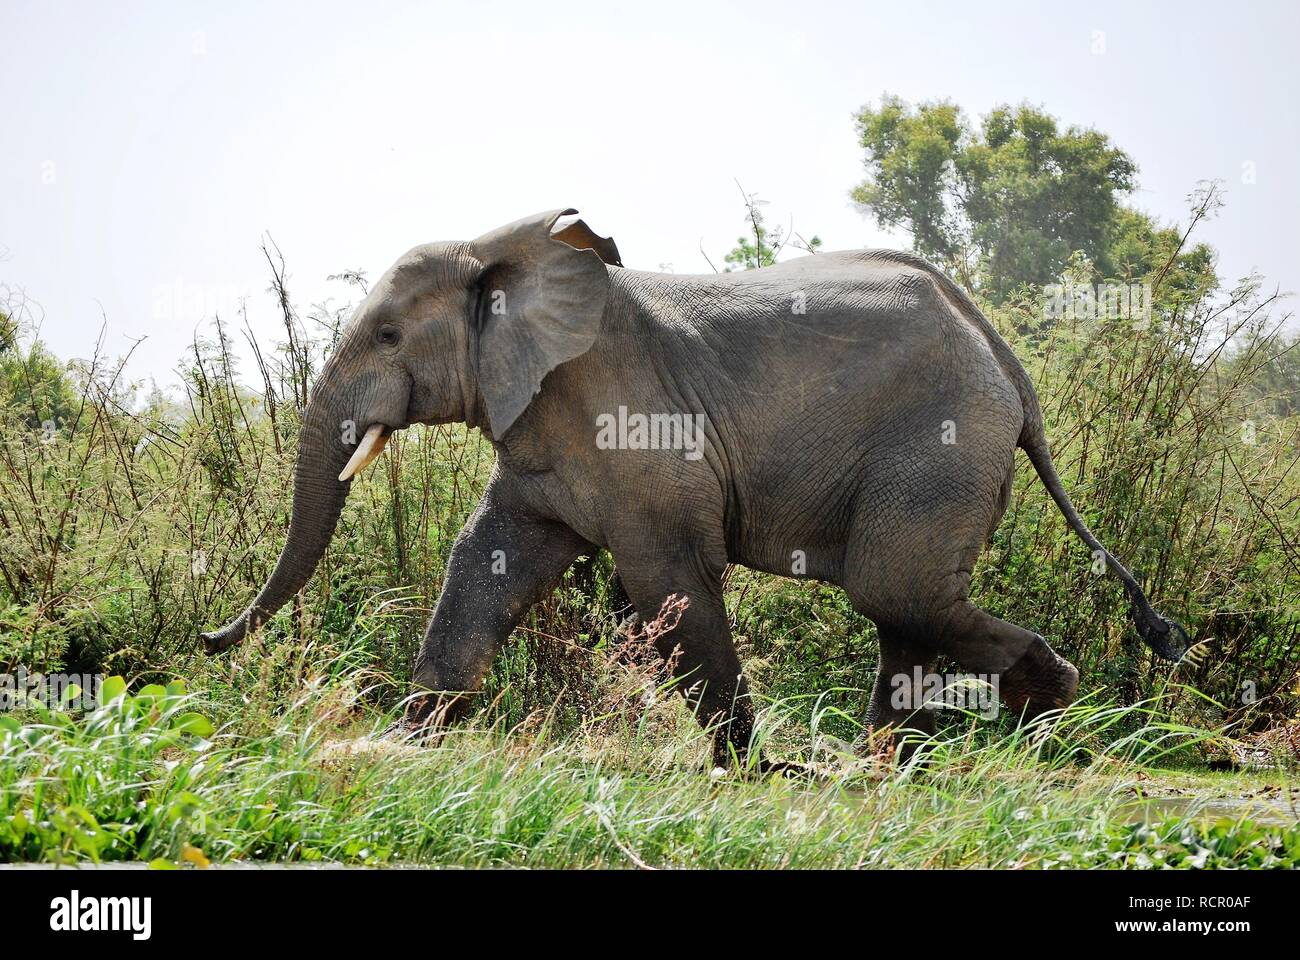 W Africa Stock Photos & W Africa Stock Images - Alamy